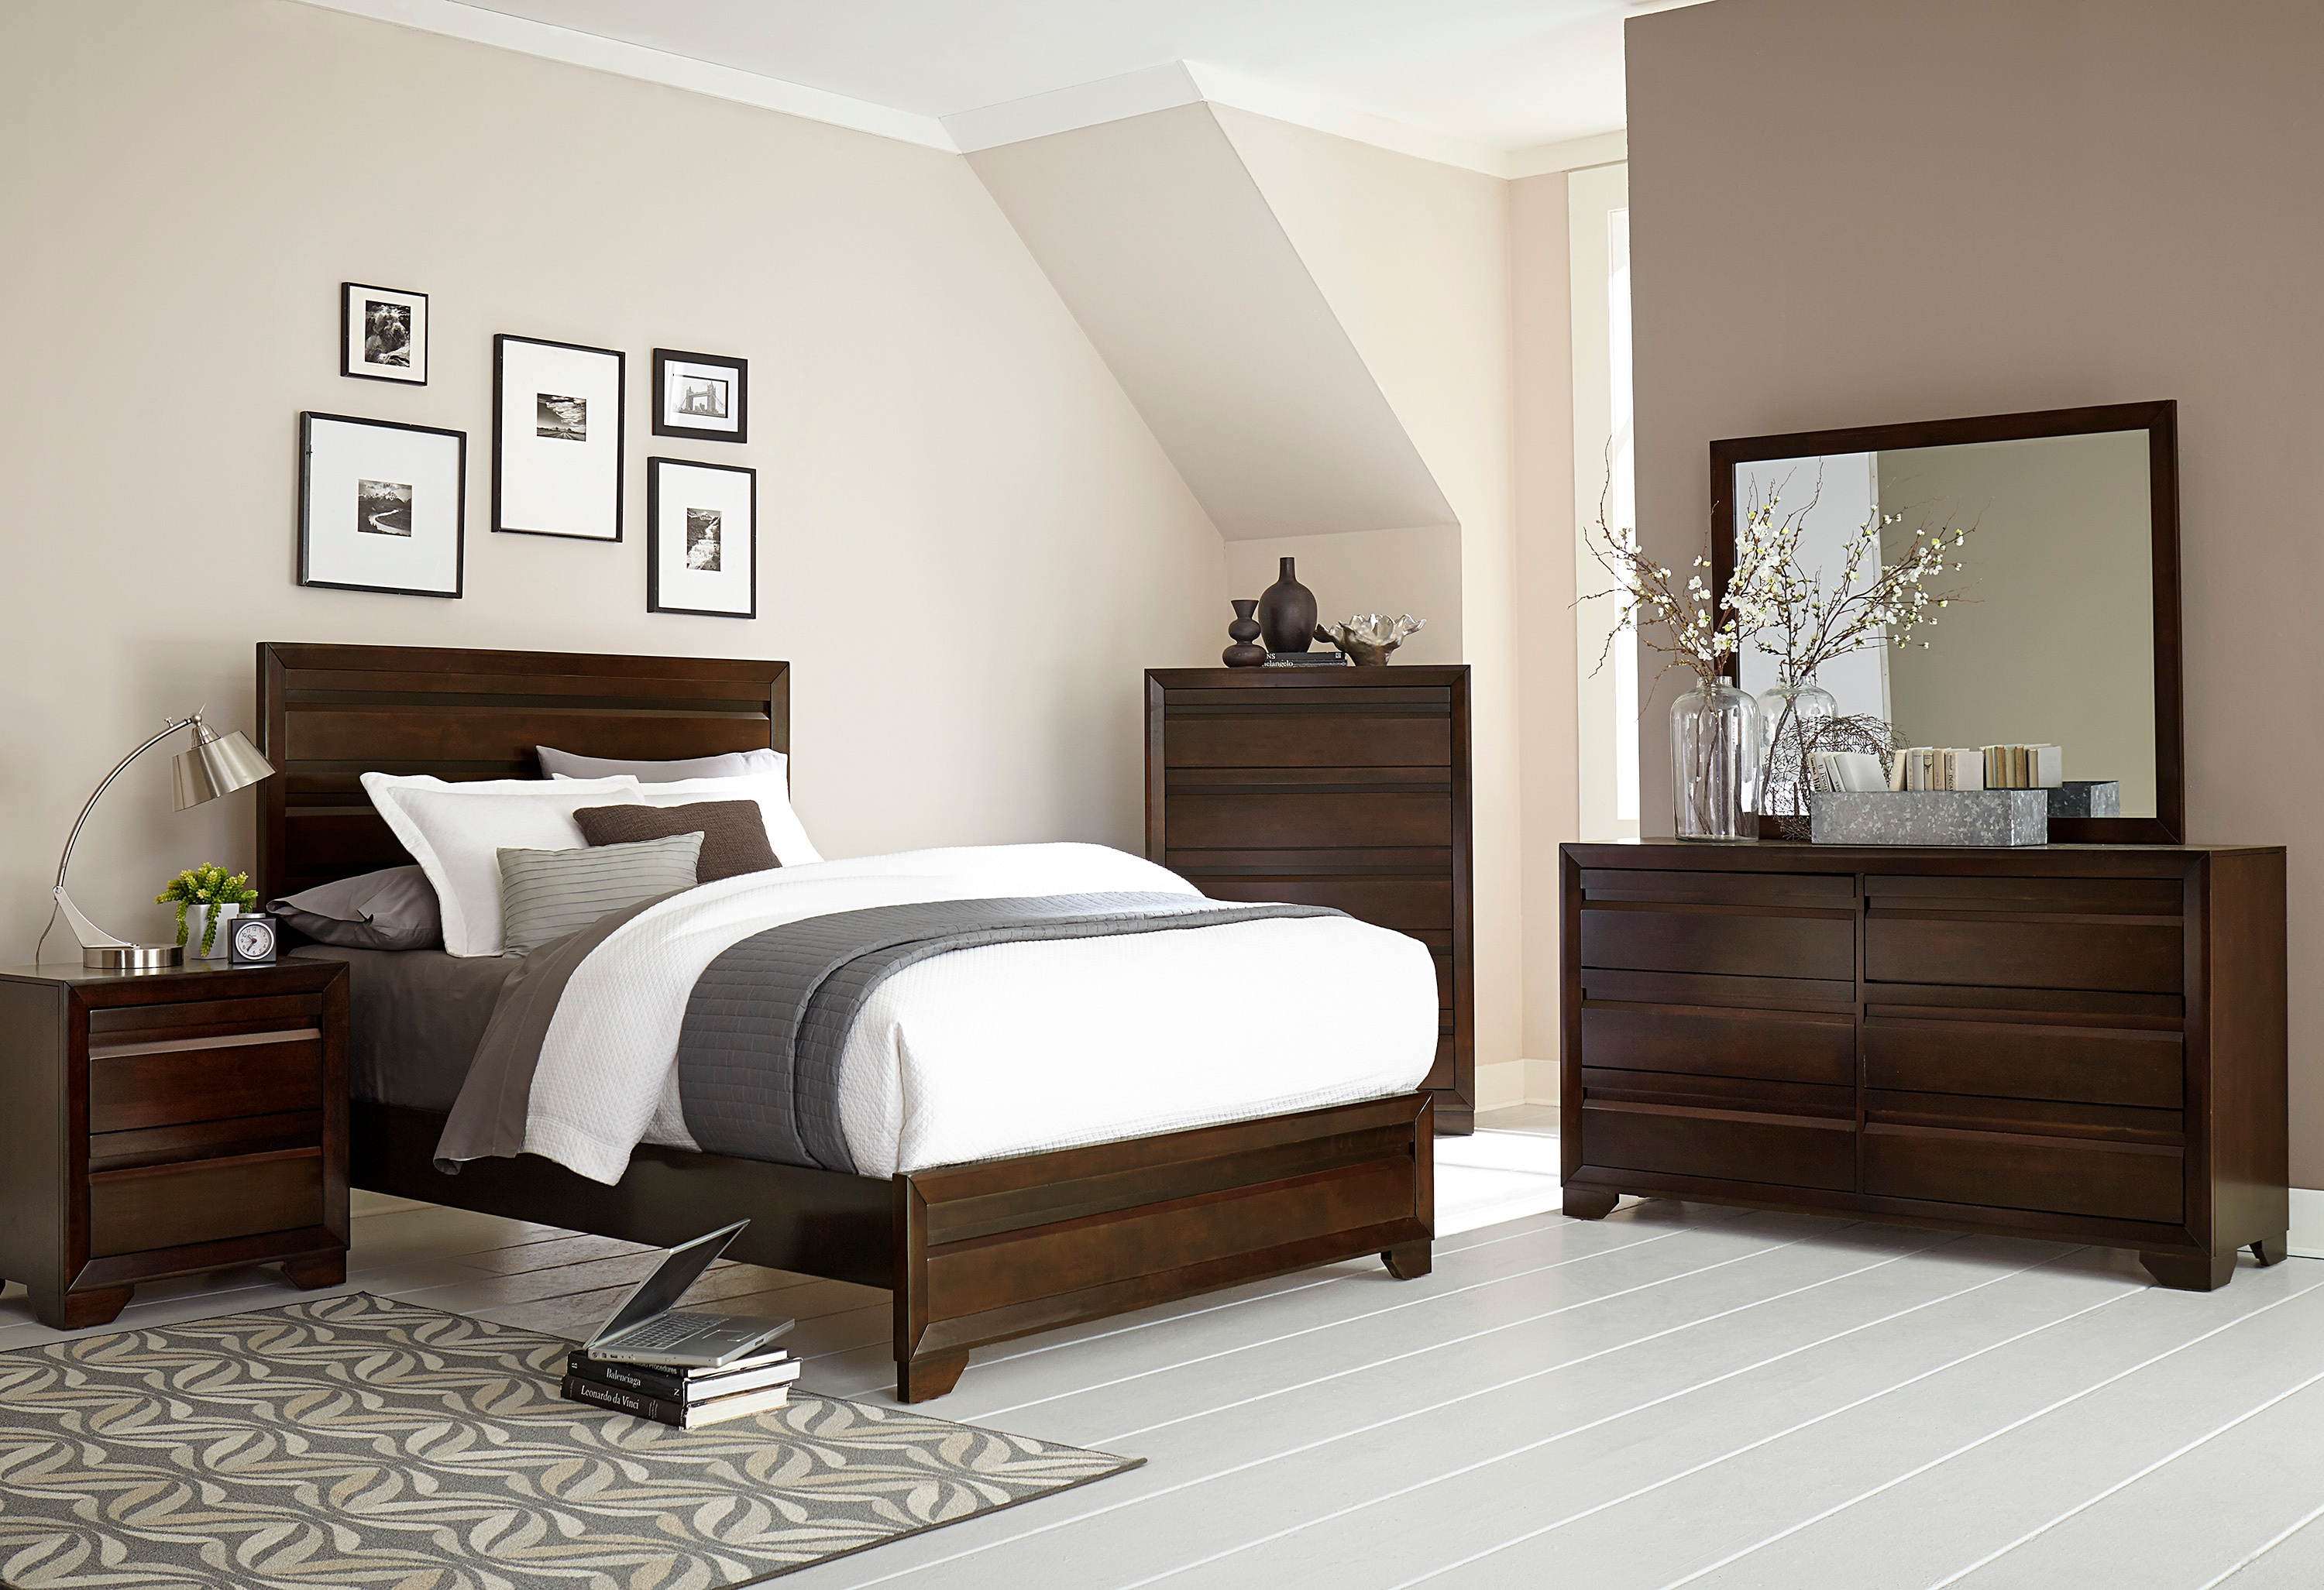 bedroom levin furniture 12080 | 513465 fit inside 7c320 320 composite to center center 7c320 320 background color white